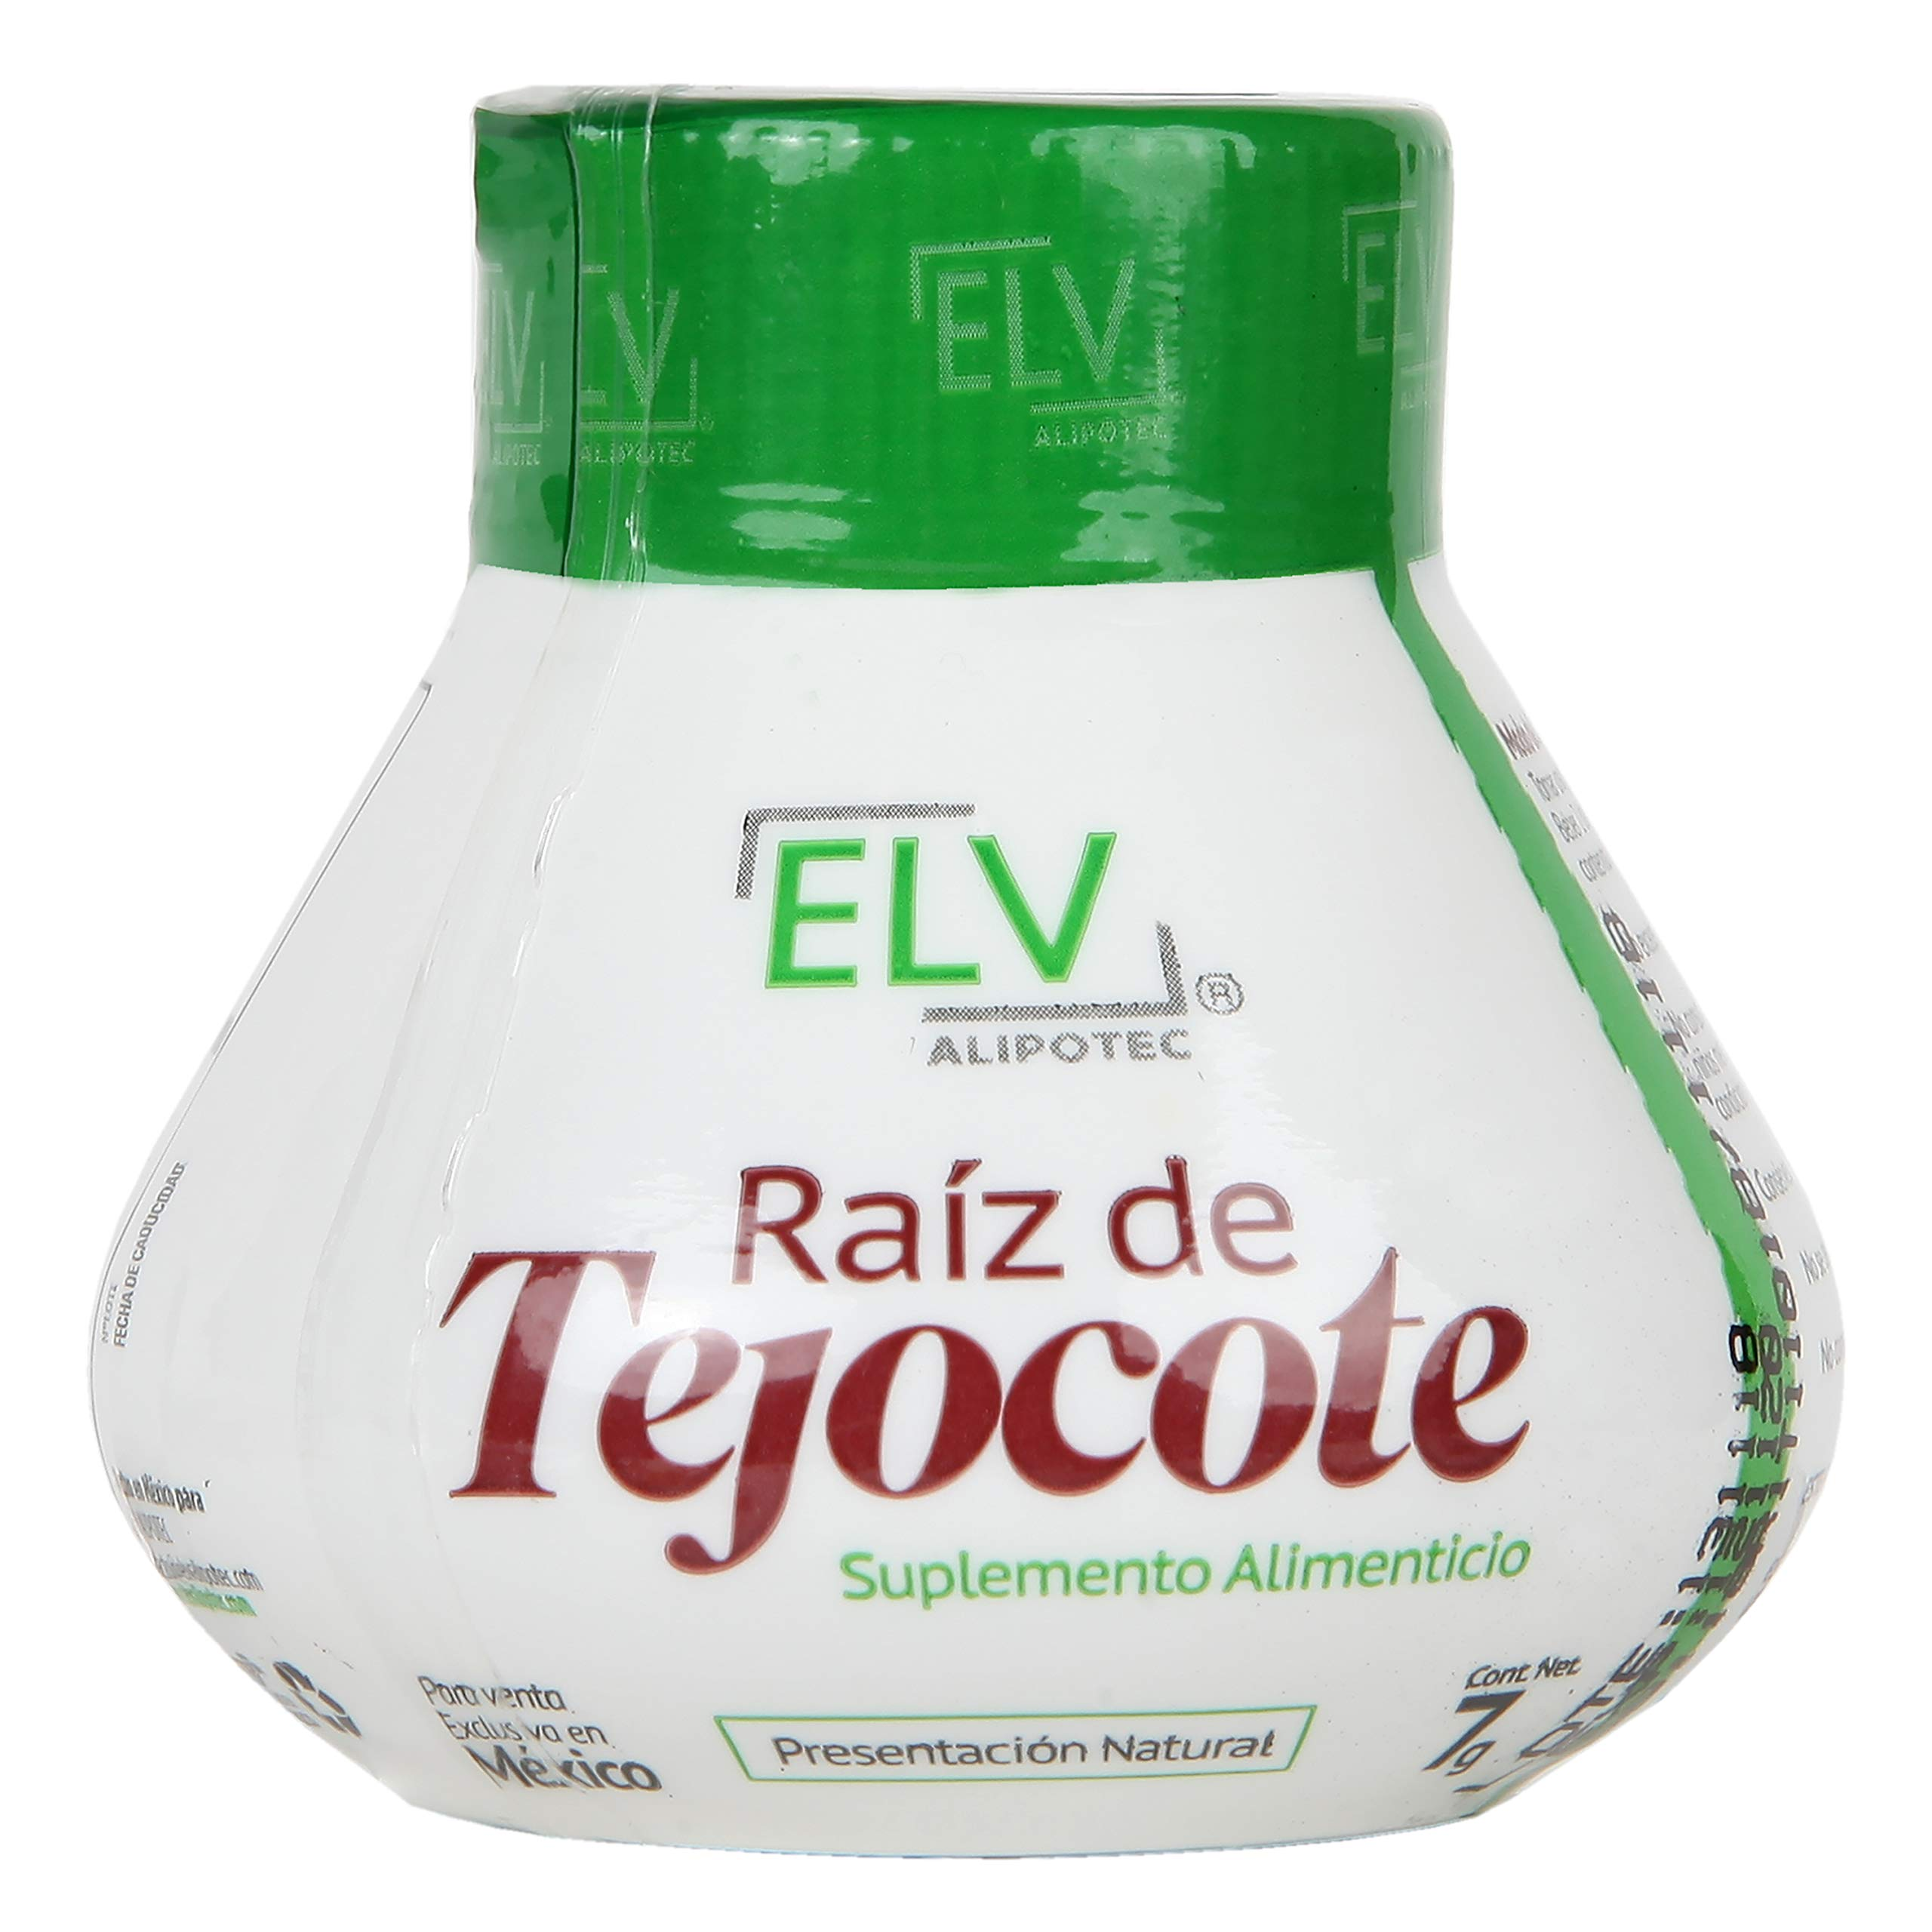 Brand New 2019 Design - Original ELV Alipotec Tejocote Root Treatment - 1 Bottle (3 Months of Treatment per Bottle) - Most Popular Weight Loss Product in Mexico- Now with New Authenticity Sticker